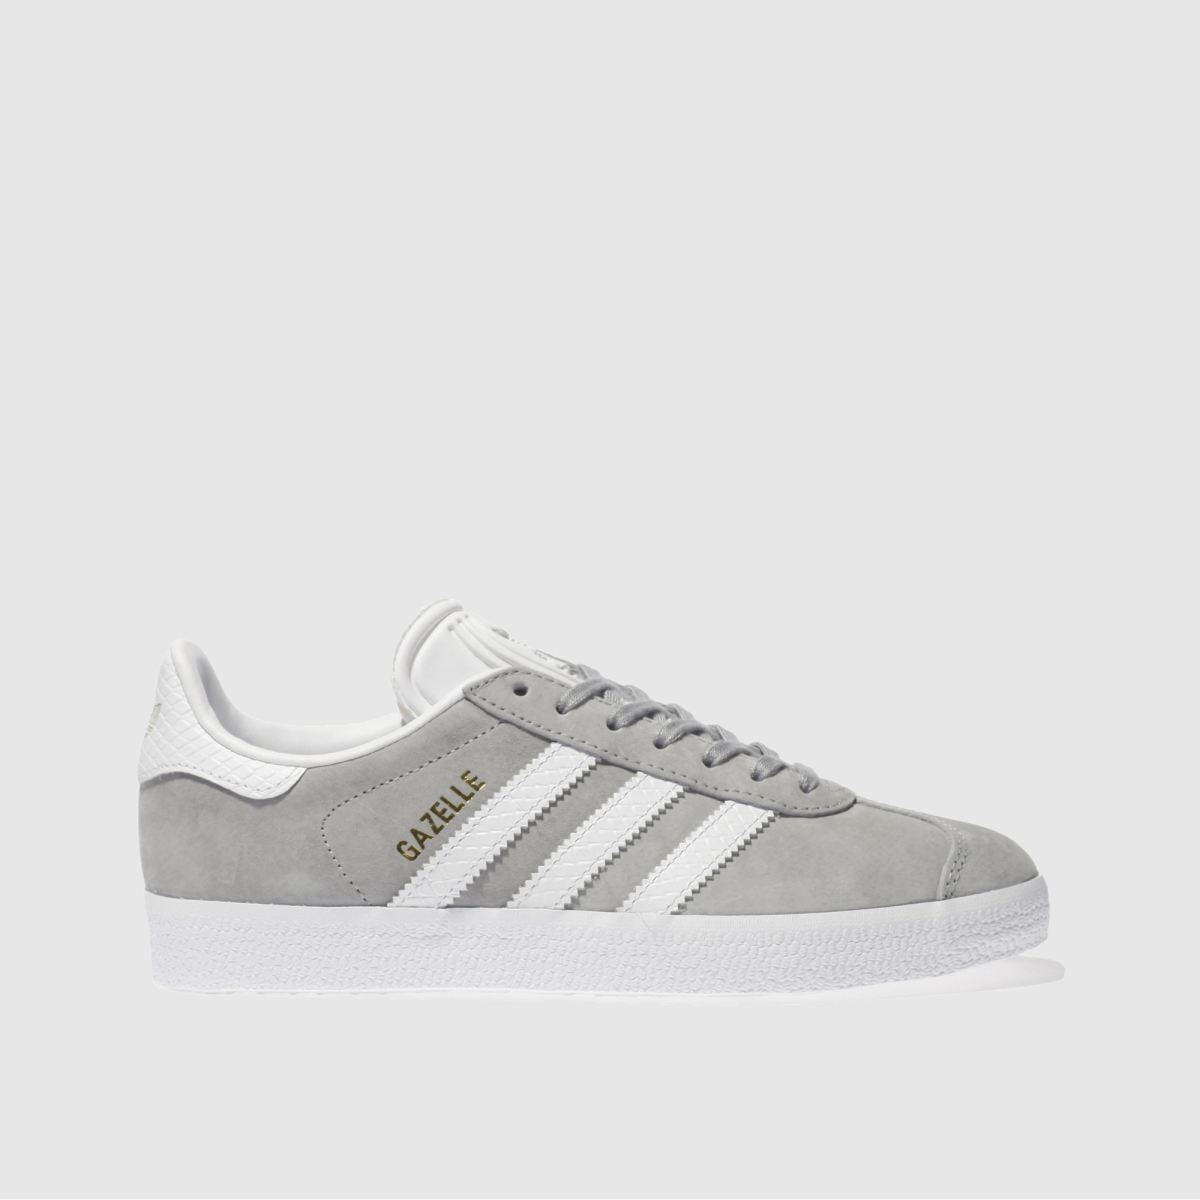 Adidas Baby Shoes Gray